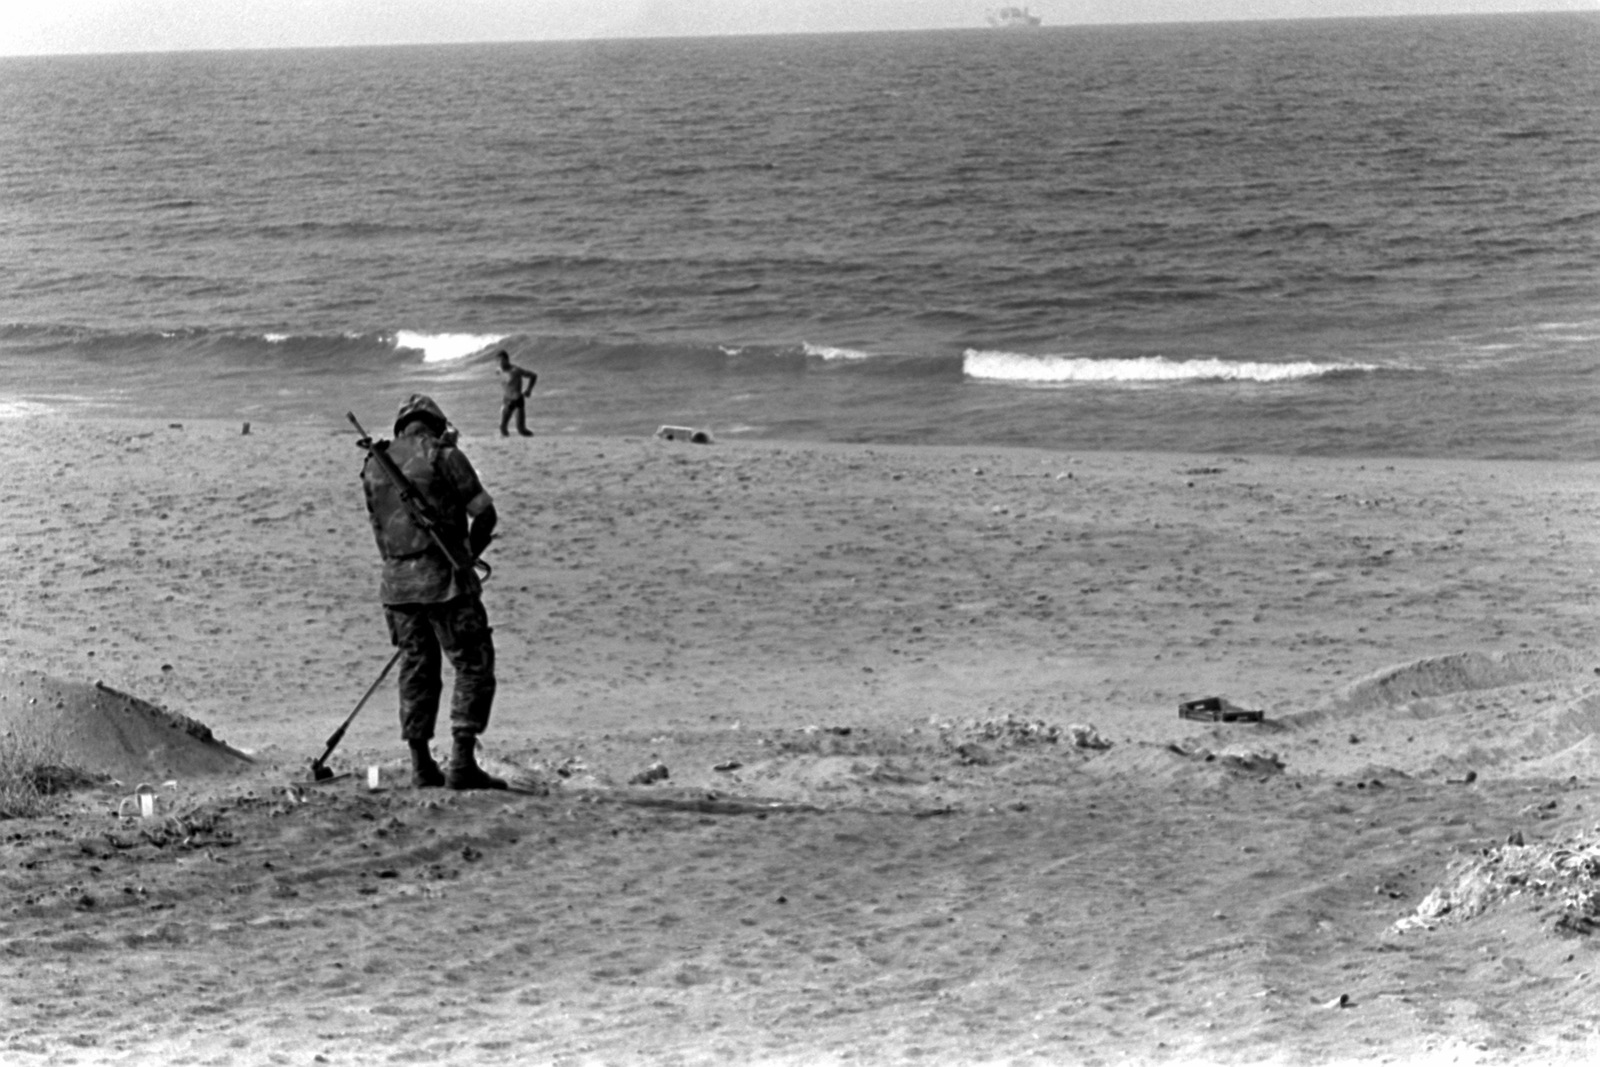 A member of an explosive ordnance disposal team uses a metal detector to check for mines on the beach. U.S. Marines have been assigned to Lebanon as part of a multinational peacekeeping force after a confrontation between Israeli forces and the Palestine Liberation Organization